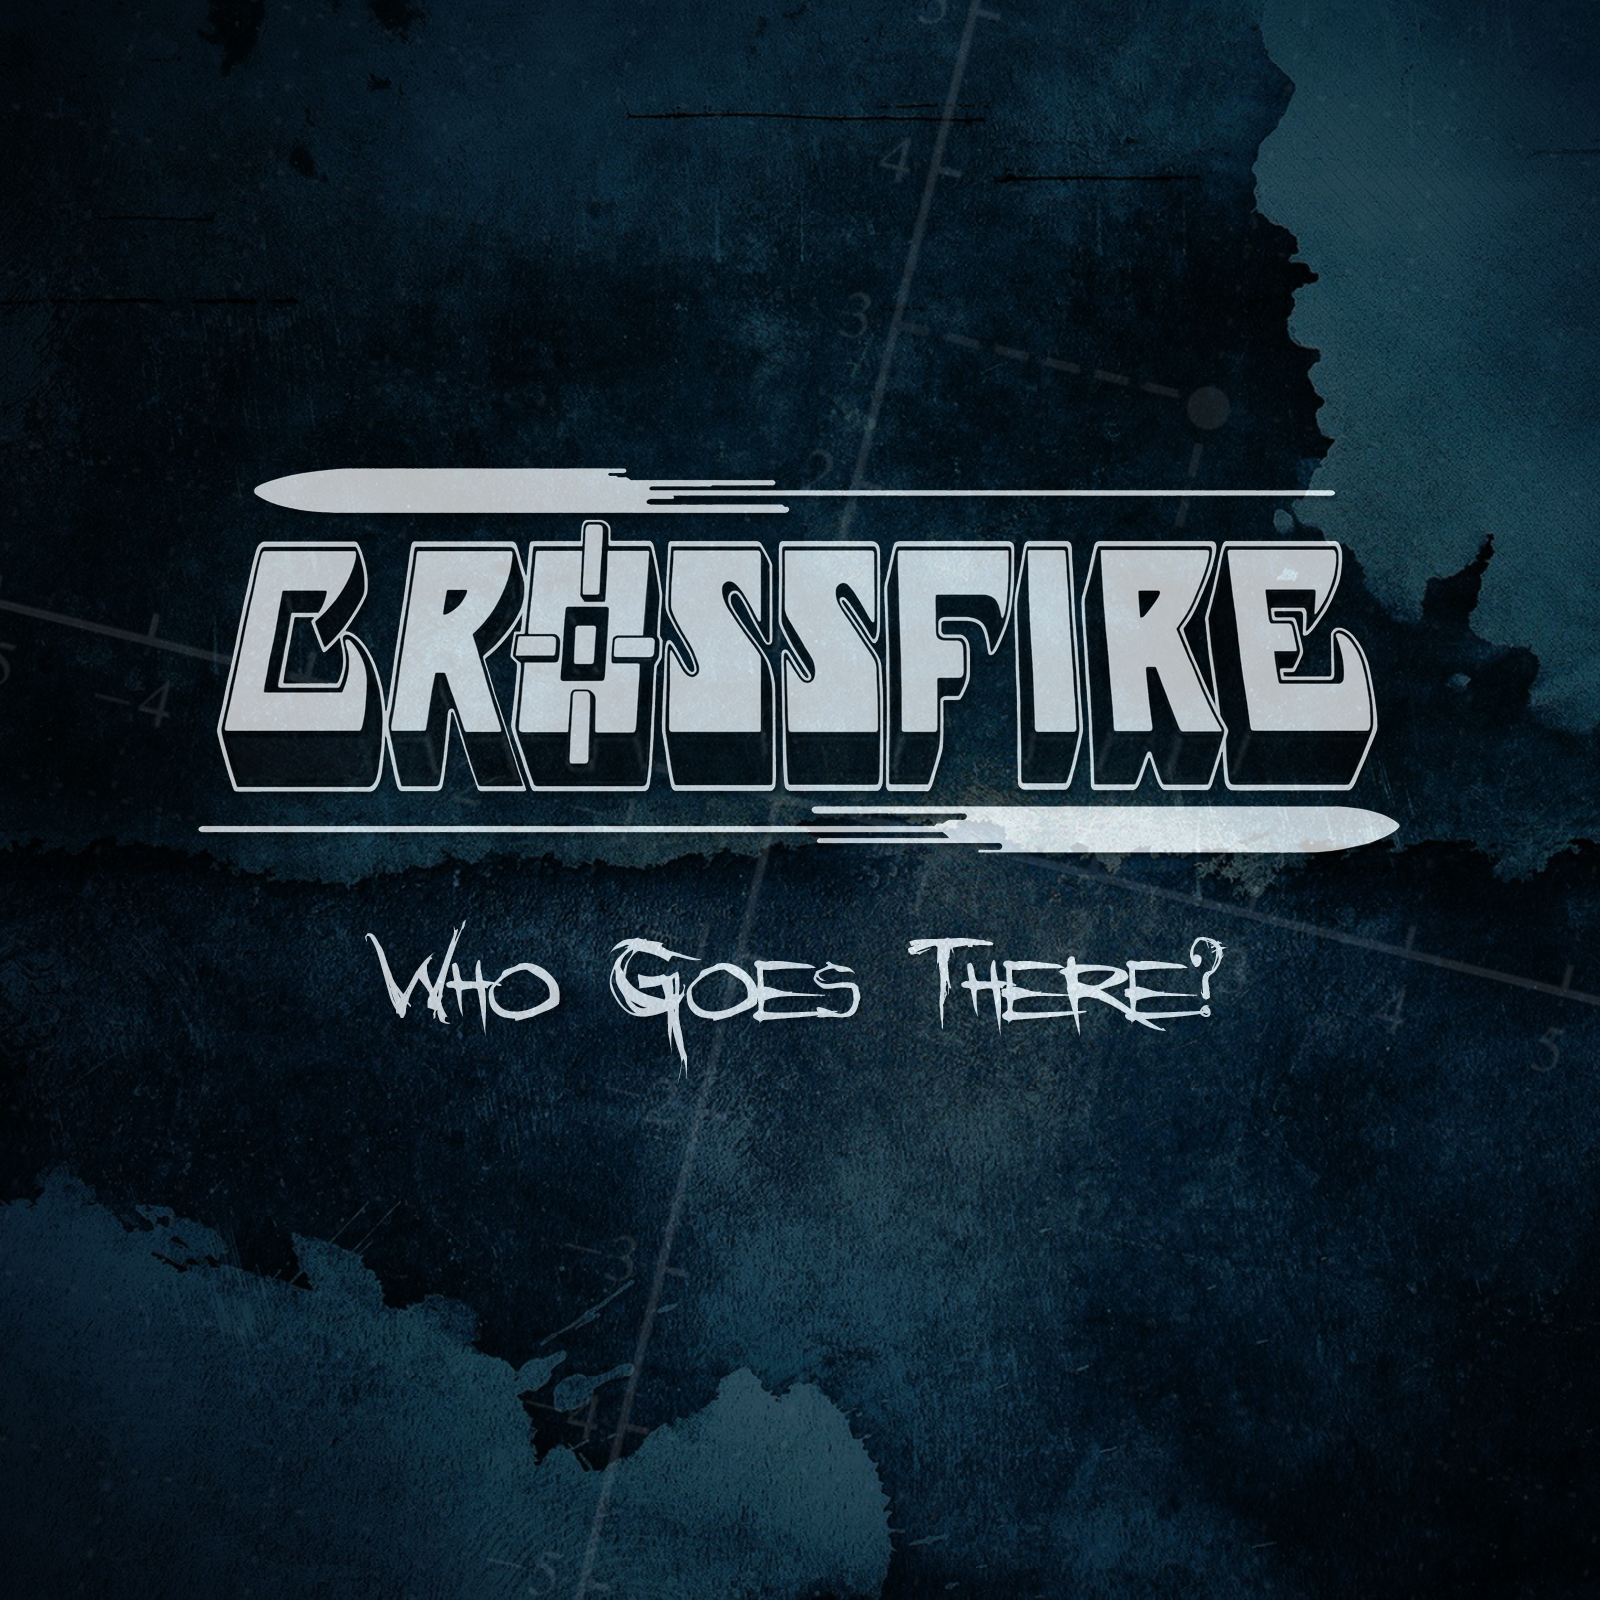 Crossfire - Who Goes There? (Teaser)